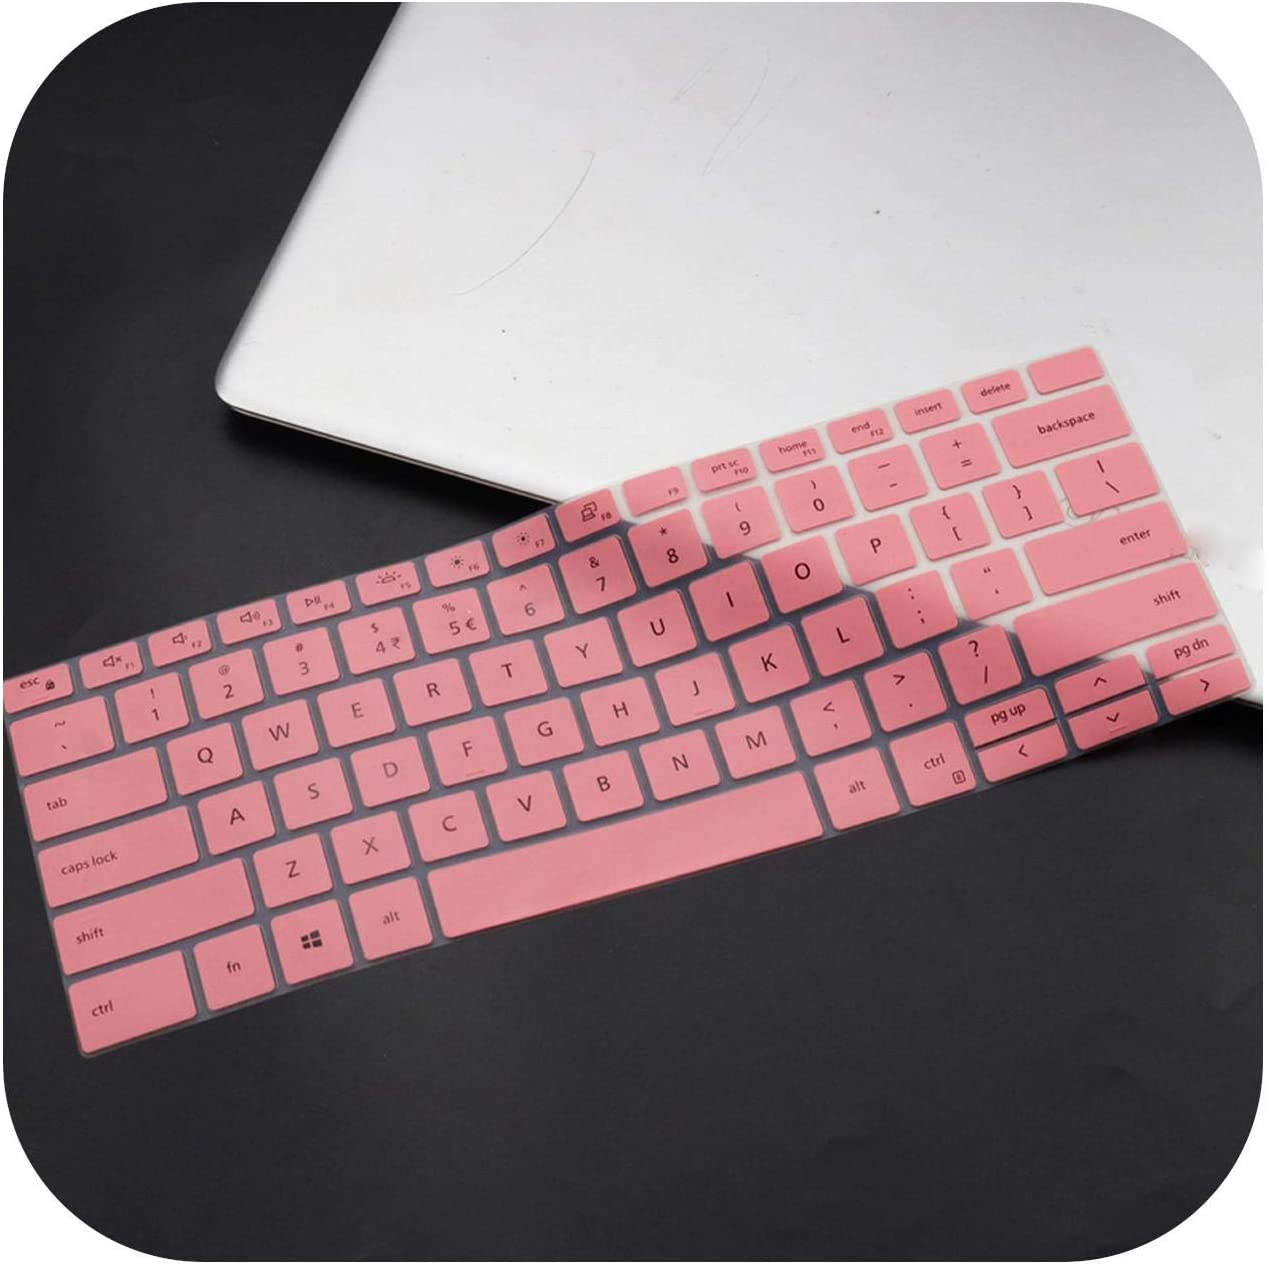 Silicone Notebook Laptop Keyboard Cover Skin for Dell Xps 13 9300 7390 2020 / Xps 15 9500 2020 / Xps 17 9700 2020-Pink-